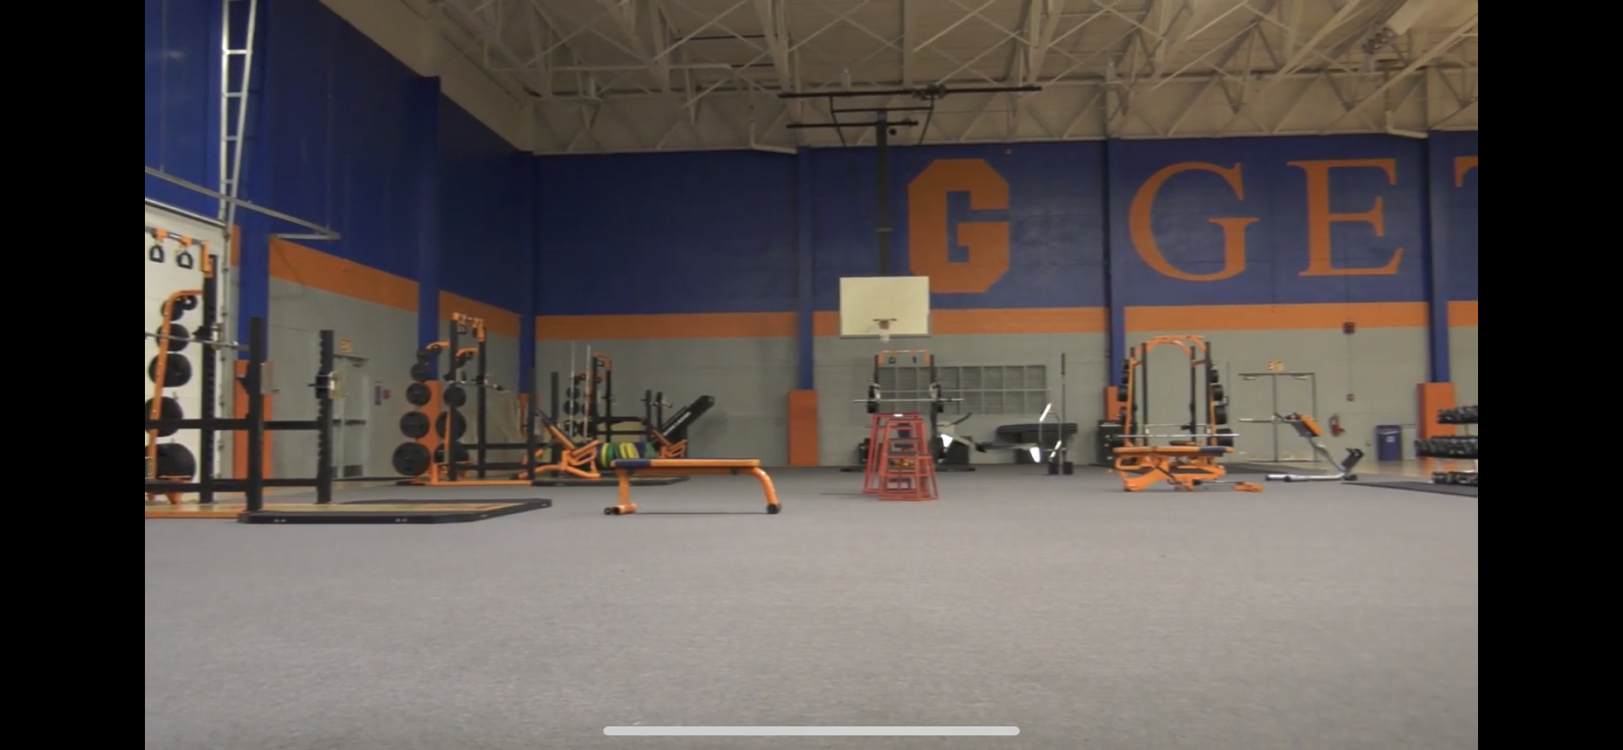 Gettysburg College Athletics facilities have spread out equipment as part of COVID-19 prevention measures (Photo courtesy of Gettysburg College Athletics)